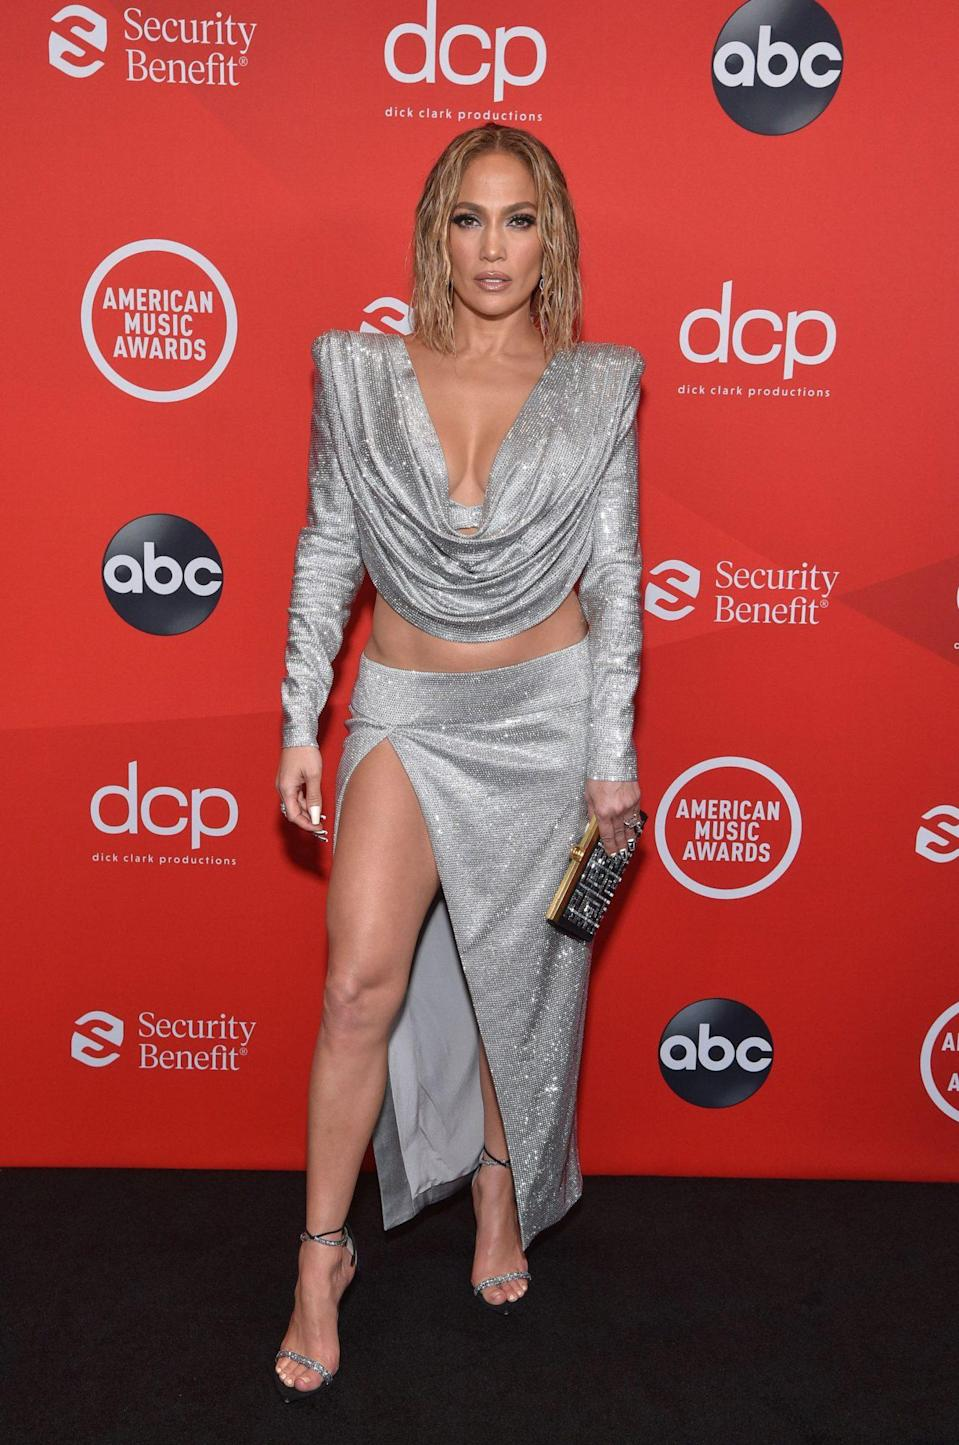 <p>Before taking the stage tonight, Jennifer Lopez arrived in a sparkling silver two-piece Balmain look (complete with the brand's signature strong shoulders) with a coordinating clutch and barely-there strappy heels. </p>